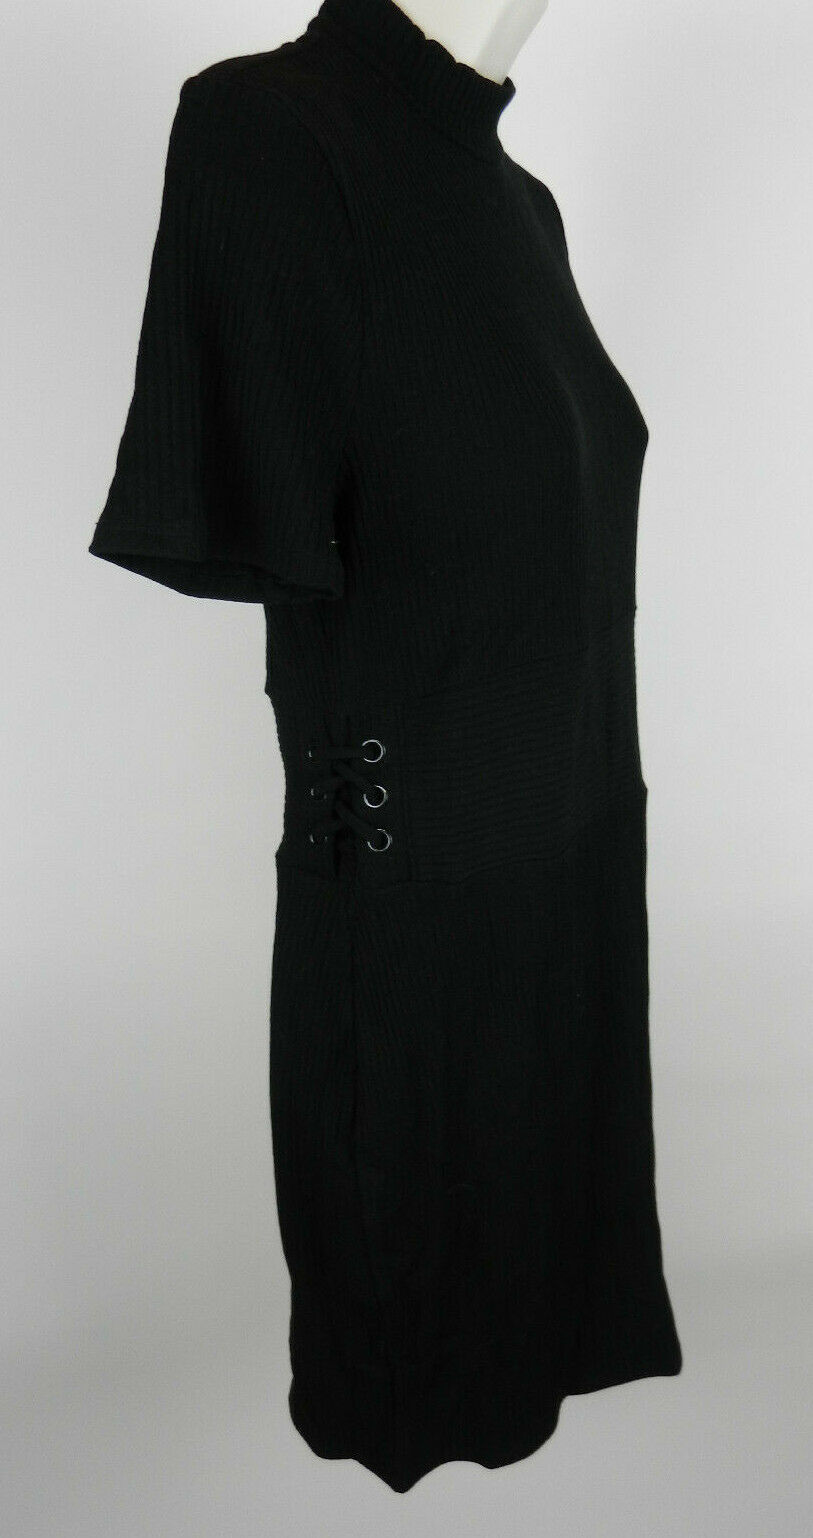 Express M Dress Black SS Knit Stretchy Accent Lacing on Right Side Bodycon New image 3